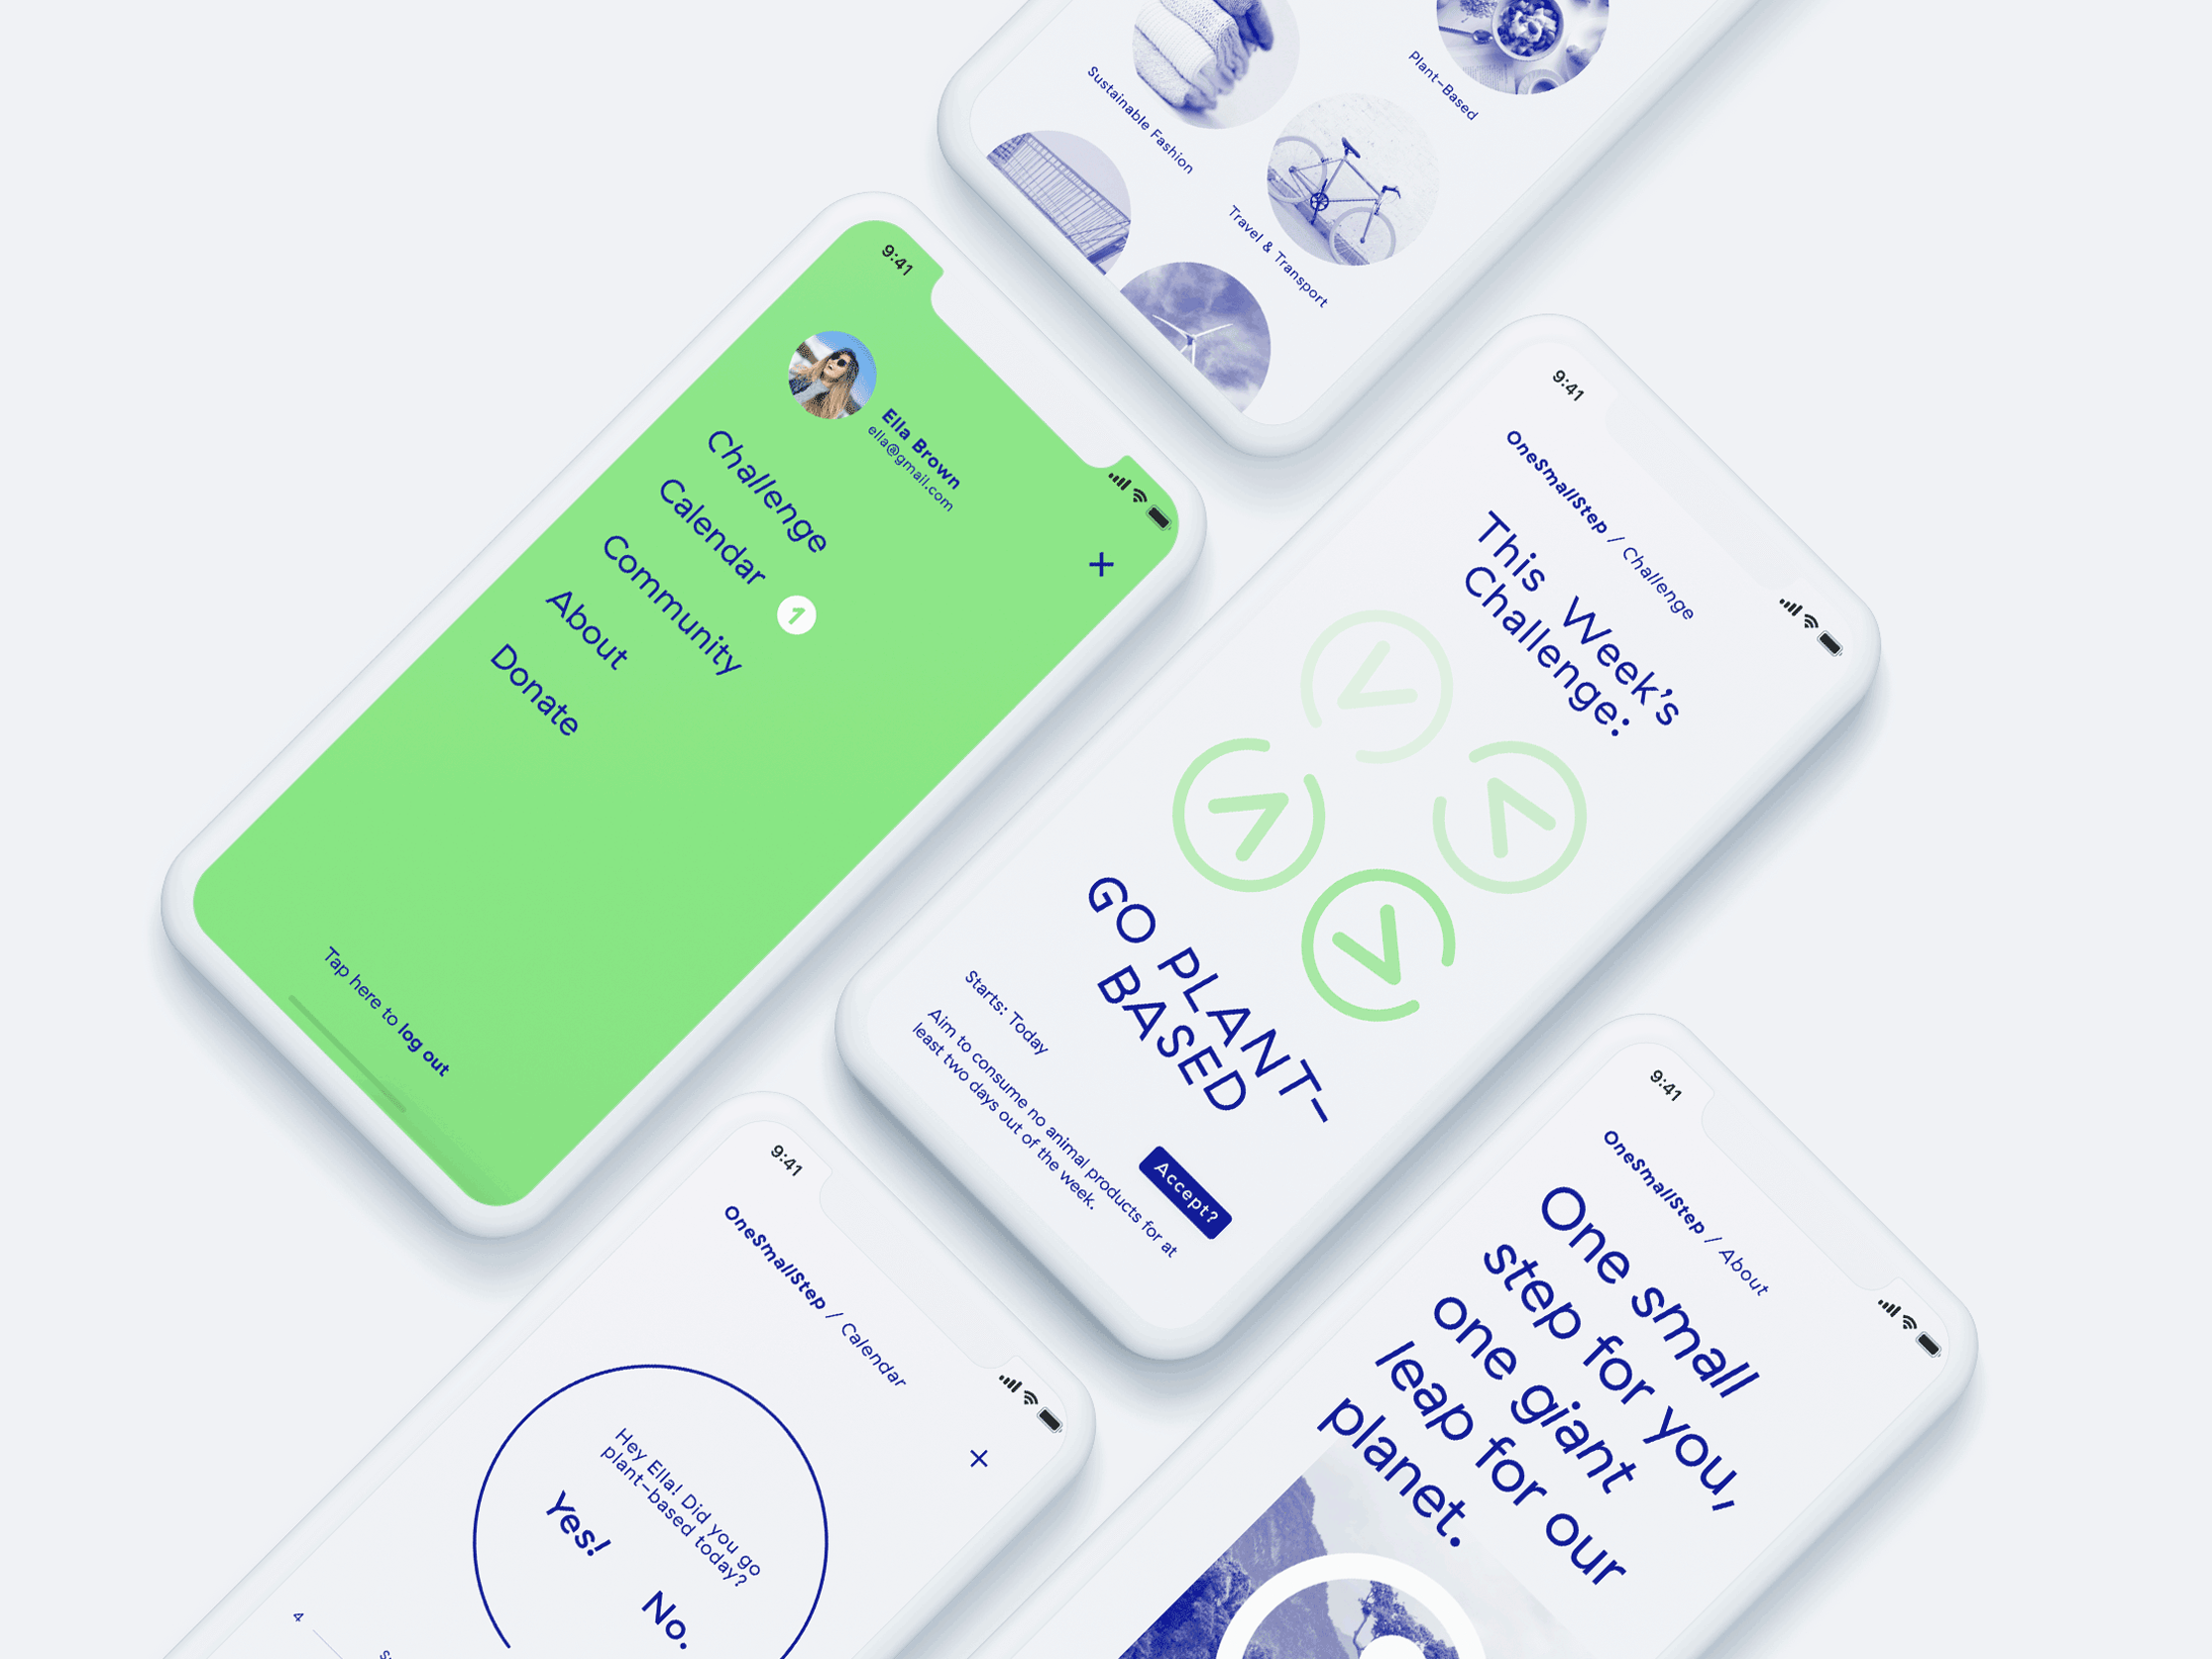 screen designs for the mobile app